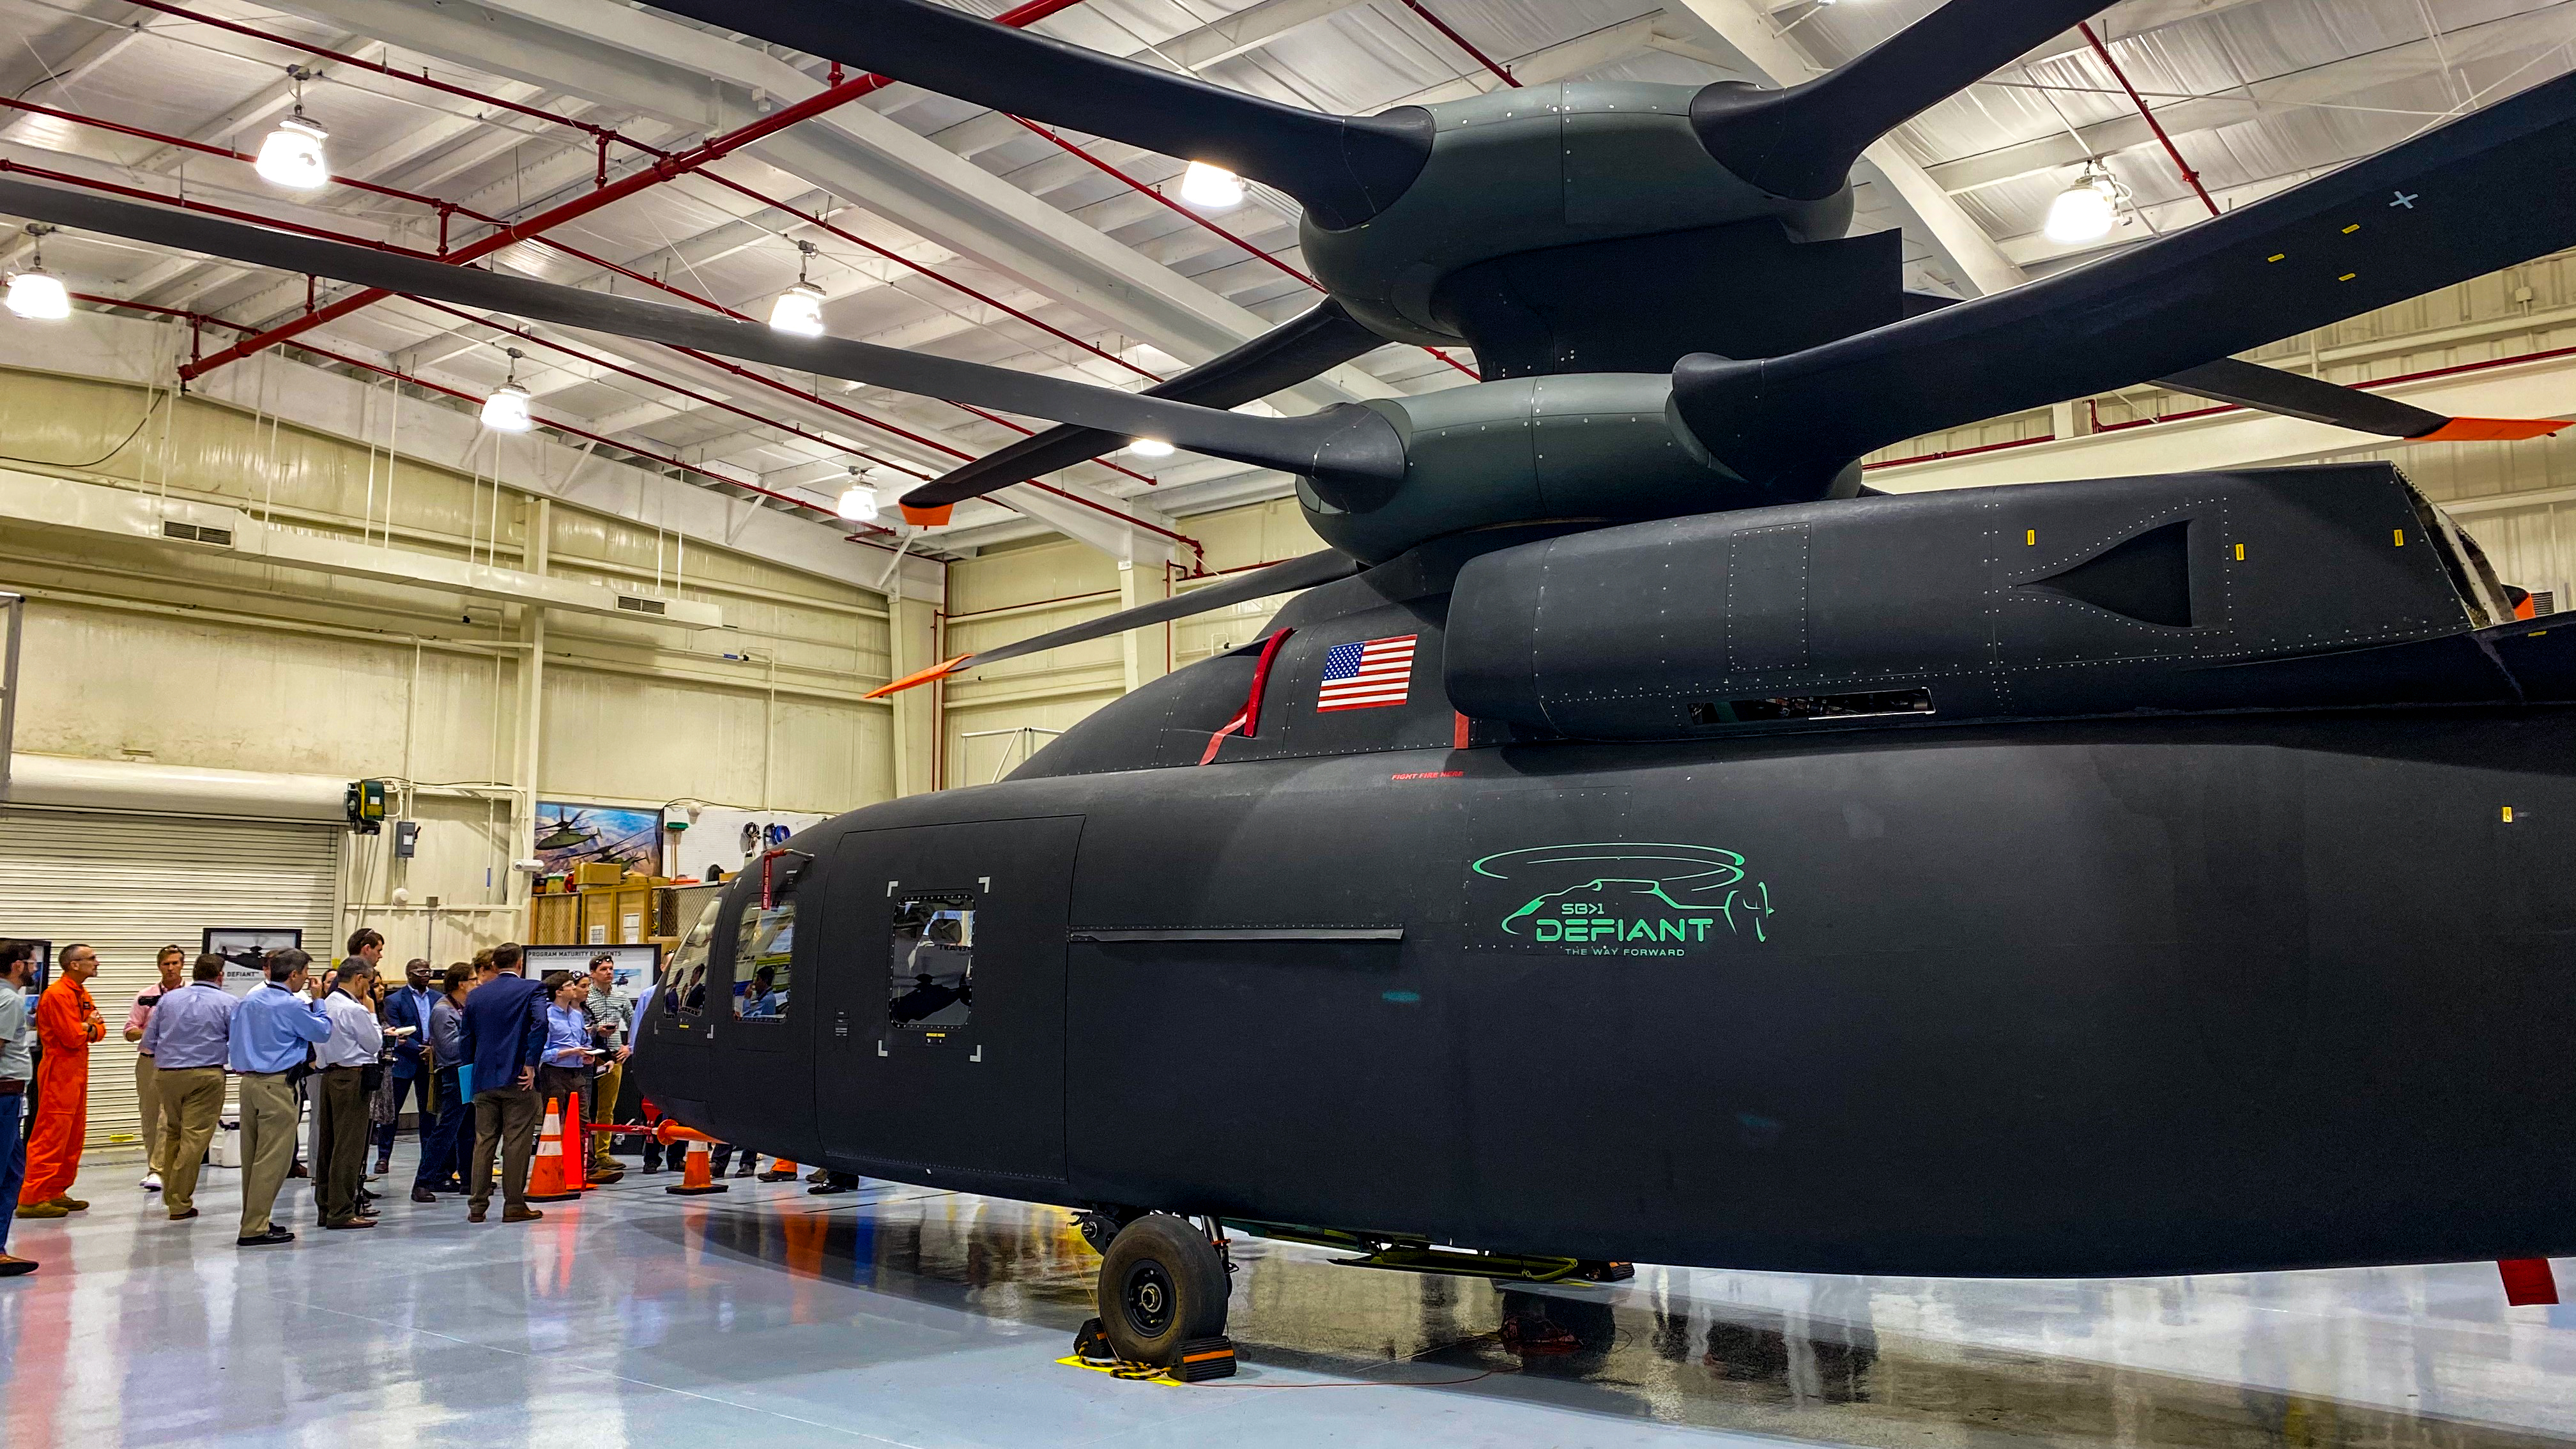 Sikorsky and Boeing's SB-1 Defiant, part of the Army's Joint Multi Role Tech Demonstrator program, sits in a hangar at Sikorsky's facility in West Palm Beach, FL. The Italian government is eying inroads into the program that could benefit its own industrial helicopter champion, Leonardo. (Jeff Martin/Staff)